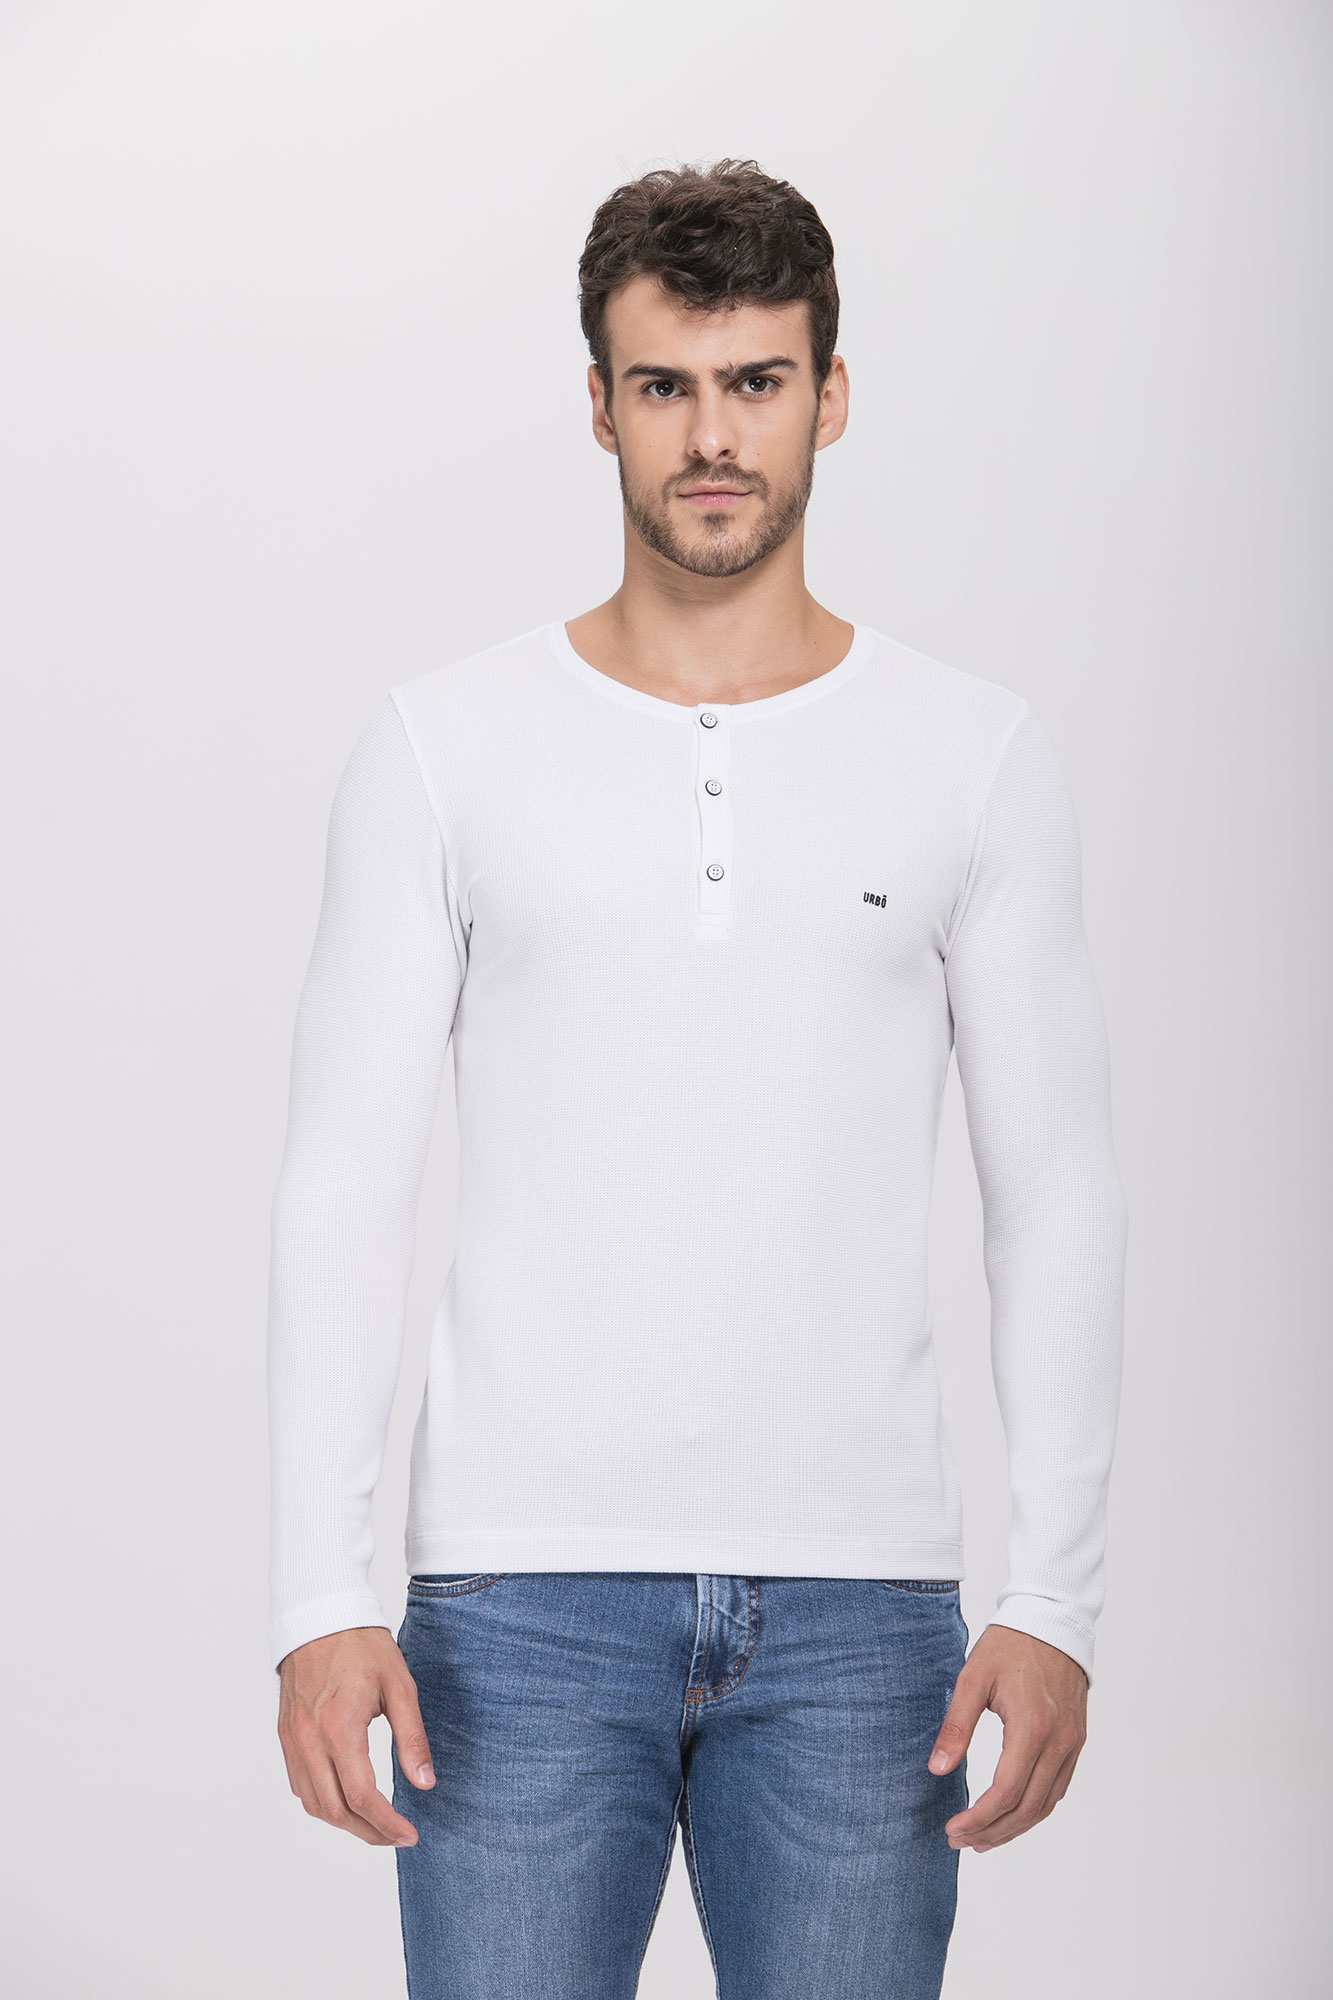 Camiseta ML Henley Branca